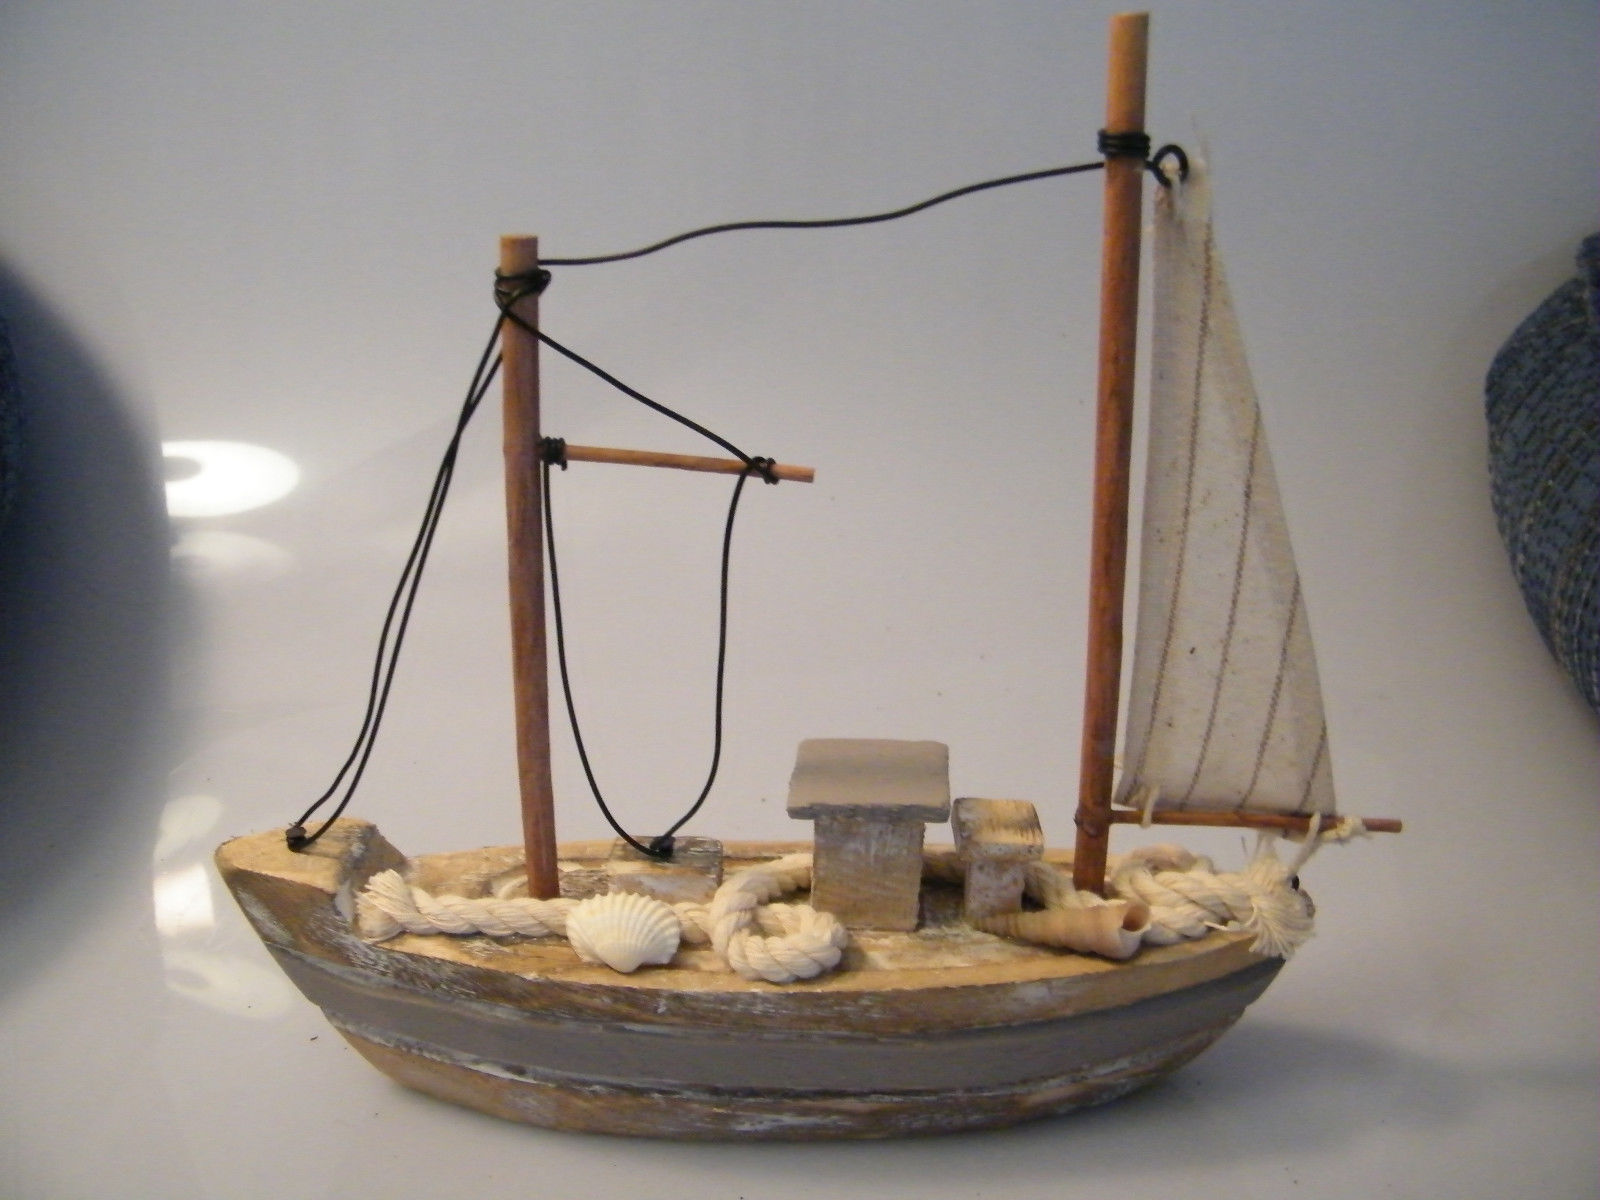 Http Bonanzamarket Co Uk Listings Wooden Sailboat With One Sail Nautical Decor Home Decor 193280271